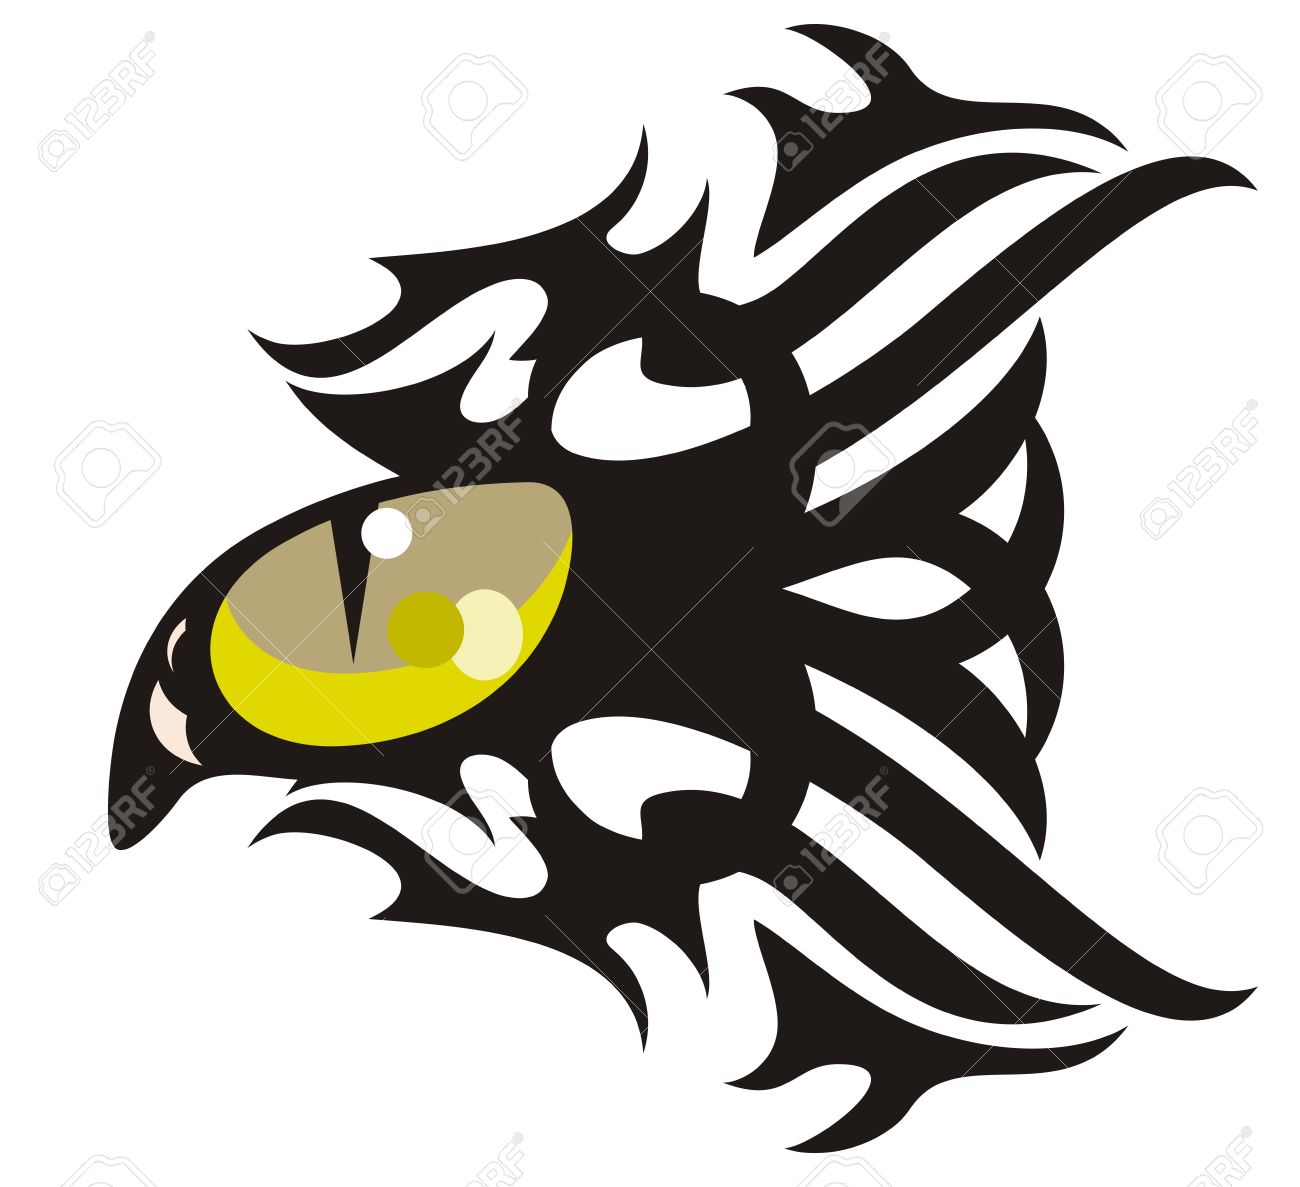 Tribal Cat Eye Tattoo In The Form Of Fish Royalty Free Cliparts